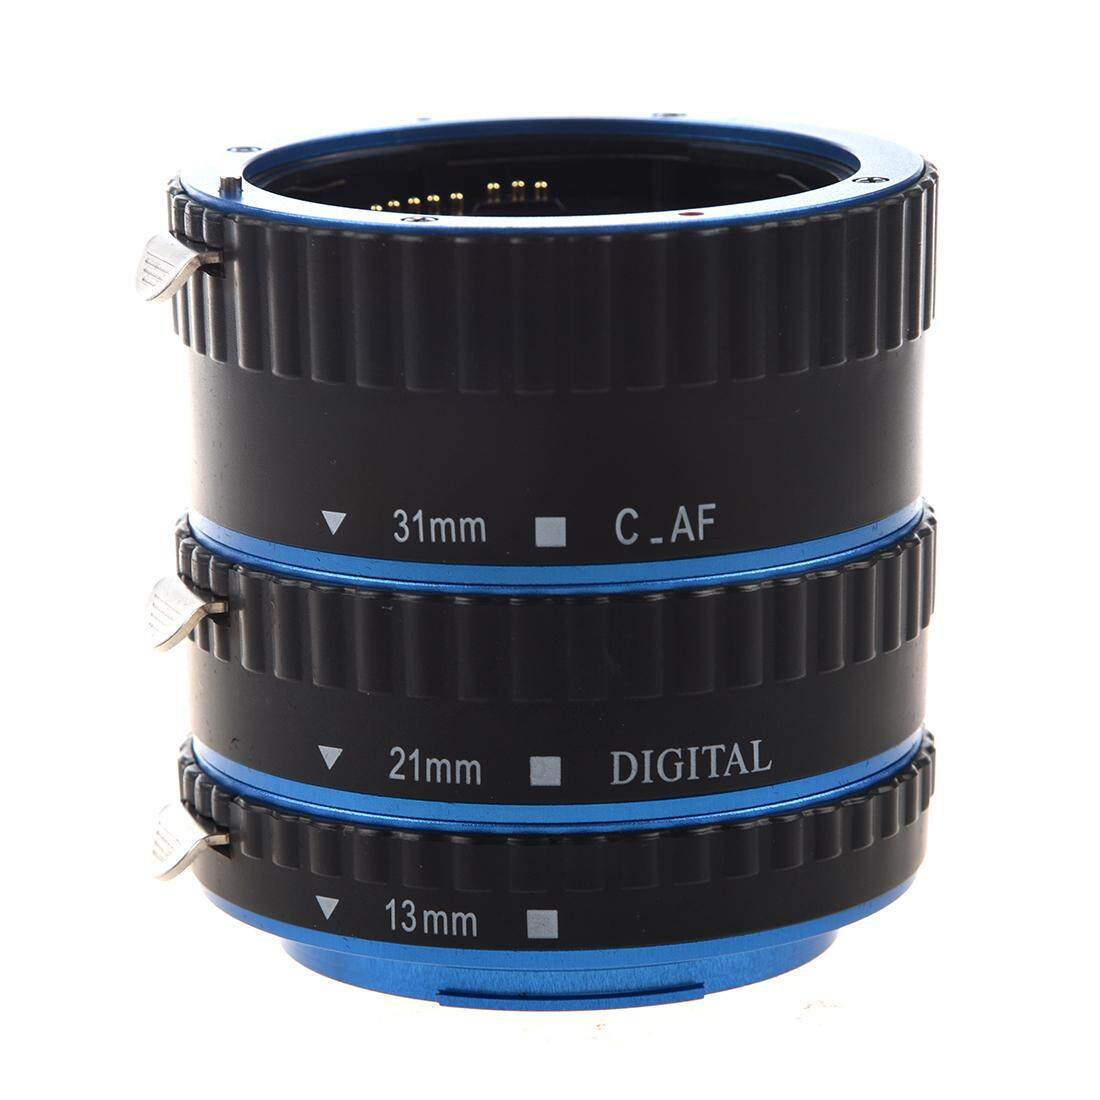 Colorful Metal TTL & Autofocus AF Macro Extension Tube Ring for all Canon EF and EF-S lenses Canon EOS EF EF-S 60D 7D 5D II 550D (Blue Black)